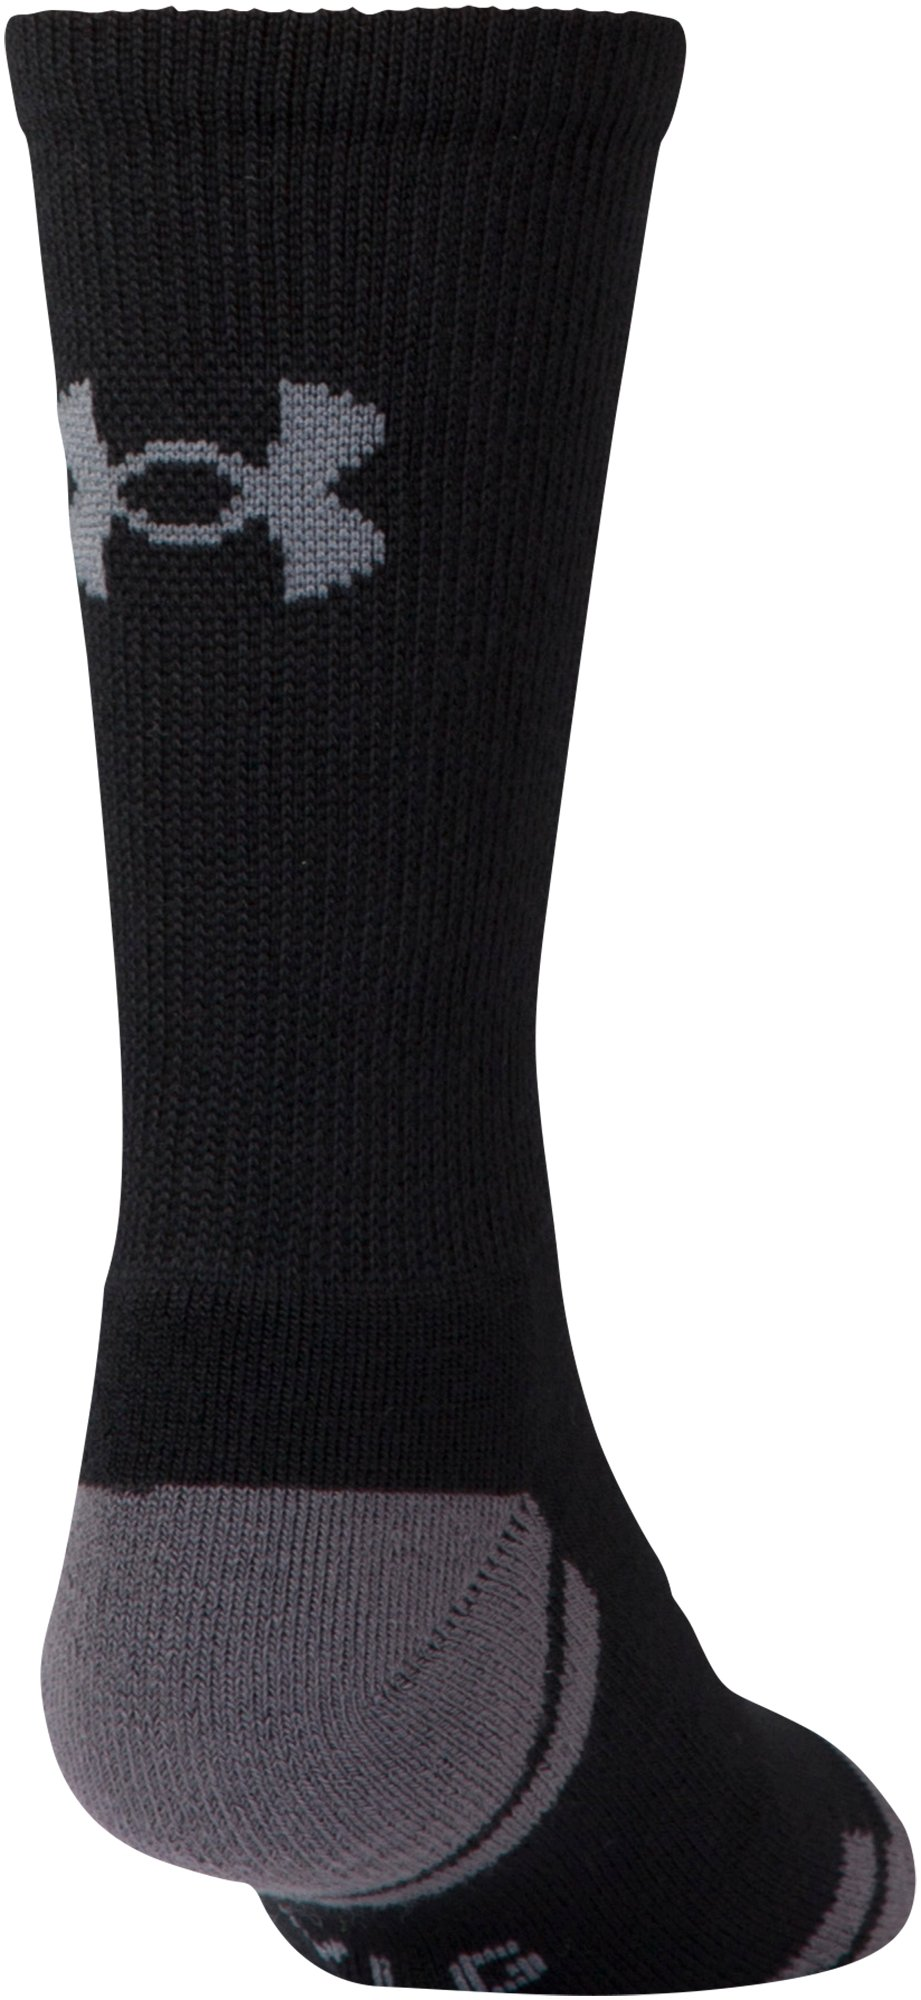 Boys' UA Resistor III Crew Socks 6-Pack, Black